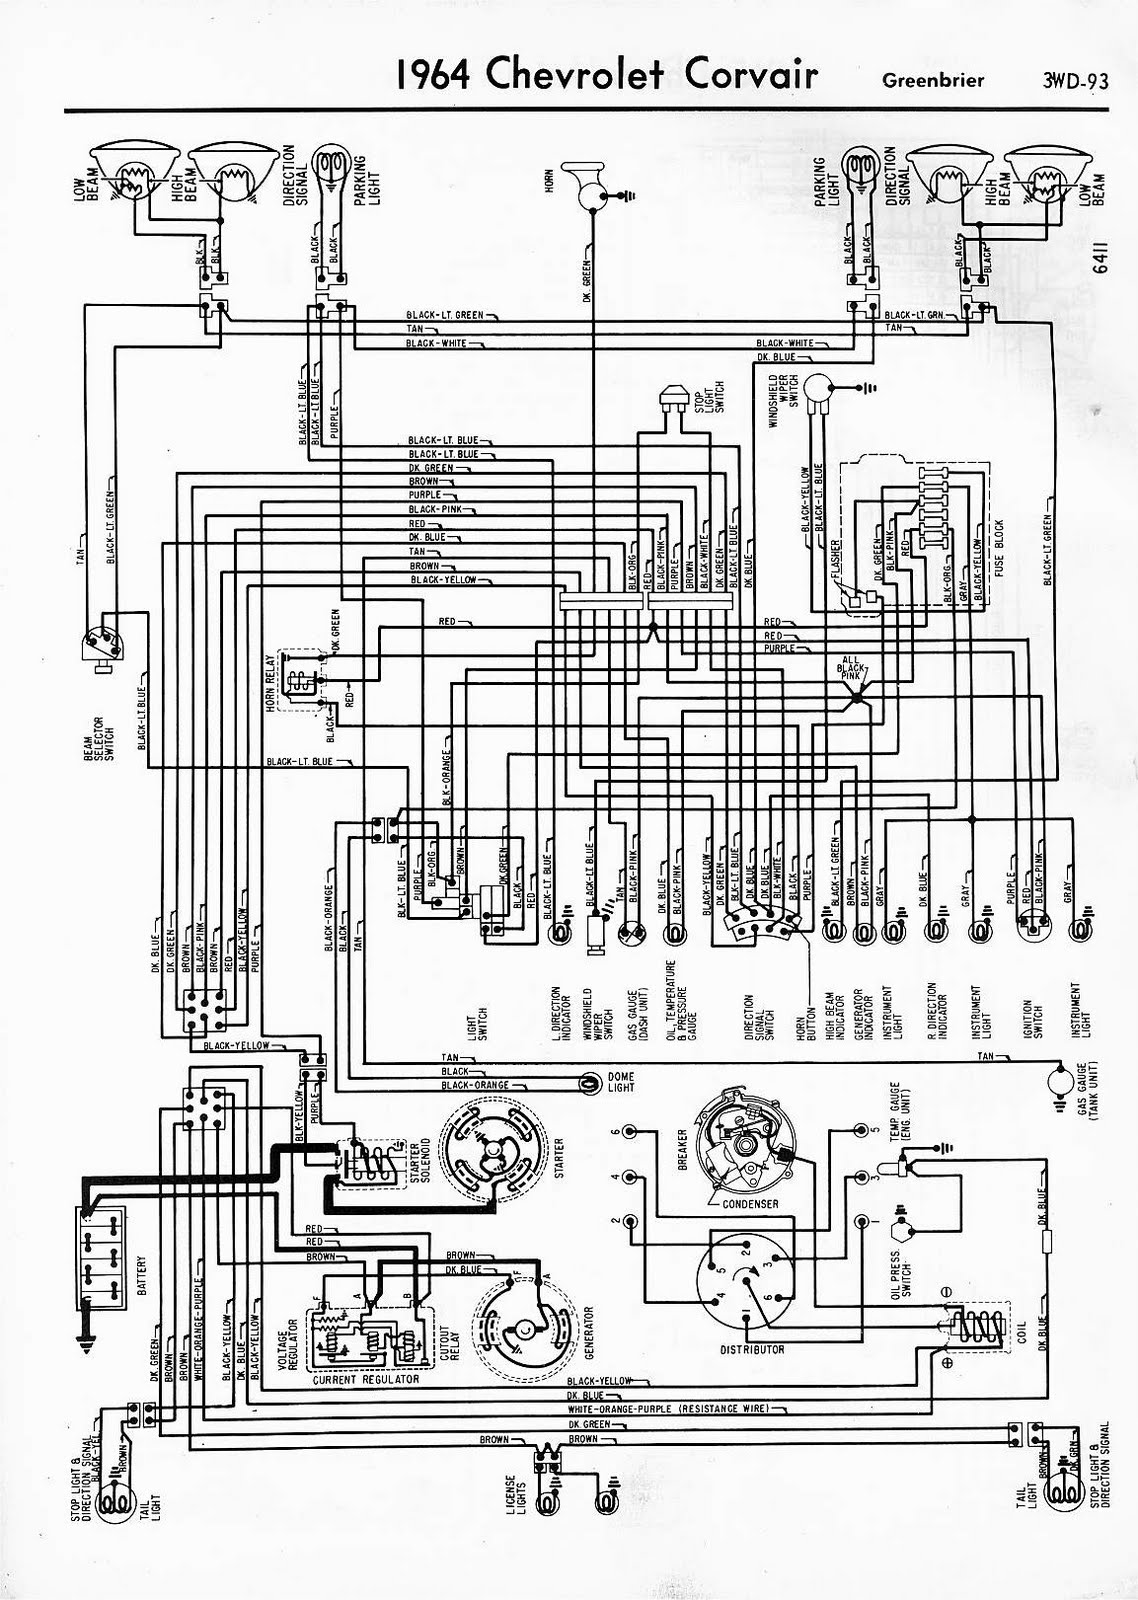 medium resolution of 63 corvair wiring diagram wiring diagrams long63 corvair wiring diagram wiring diagram blog 63 corvair wiring